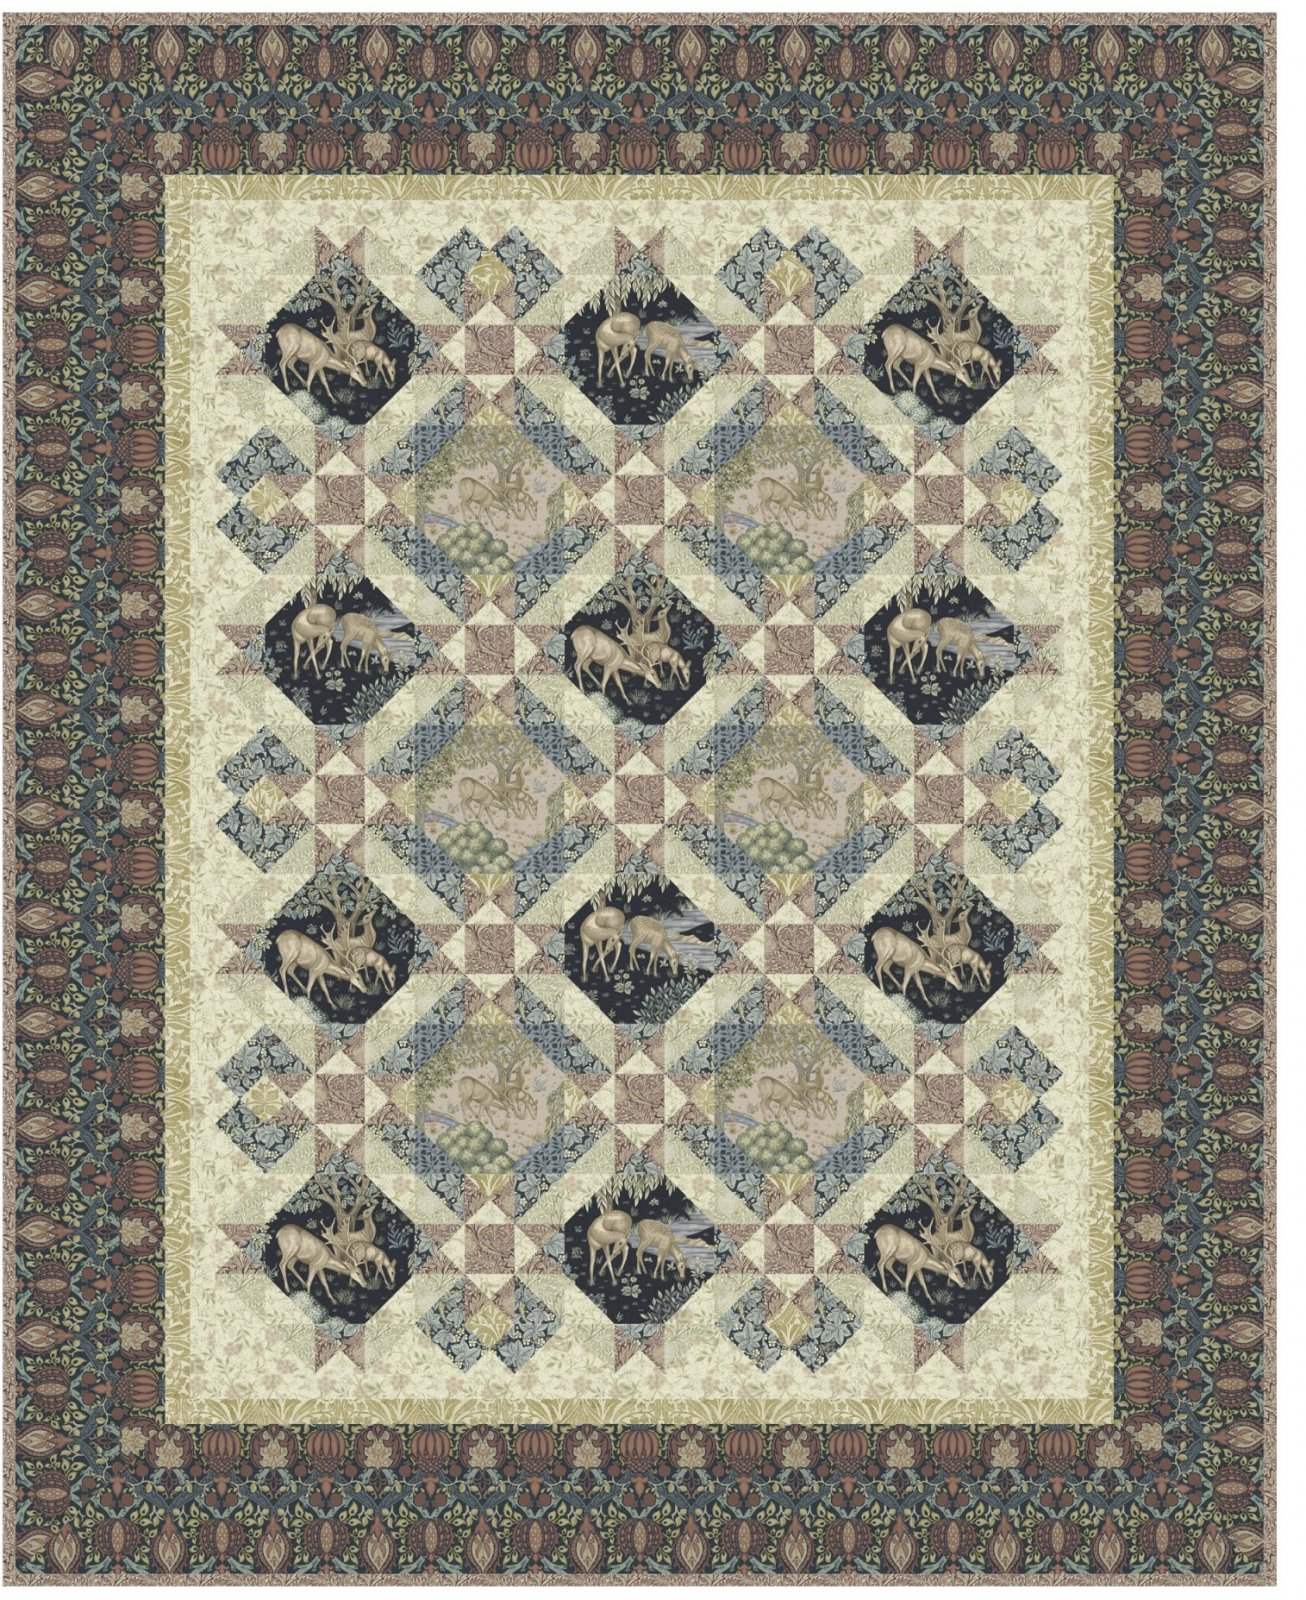 Earthly Treasures Quilt Pattern Download